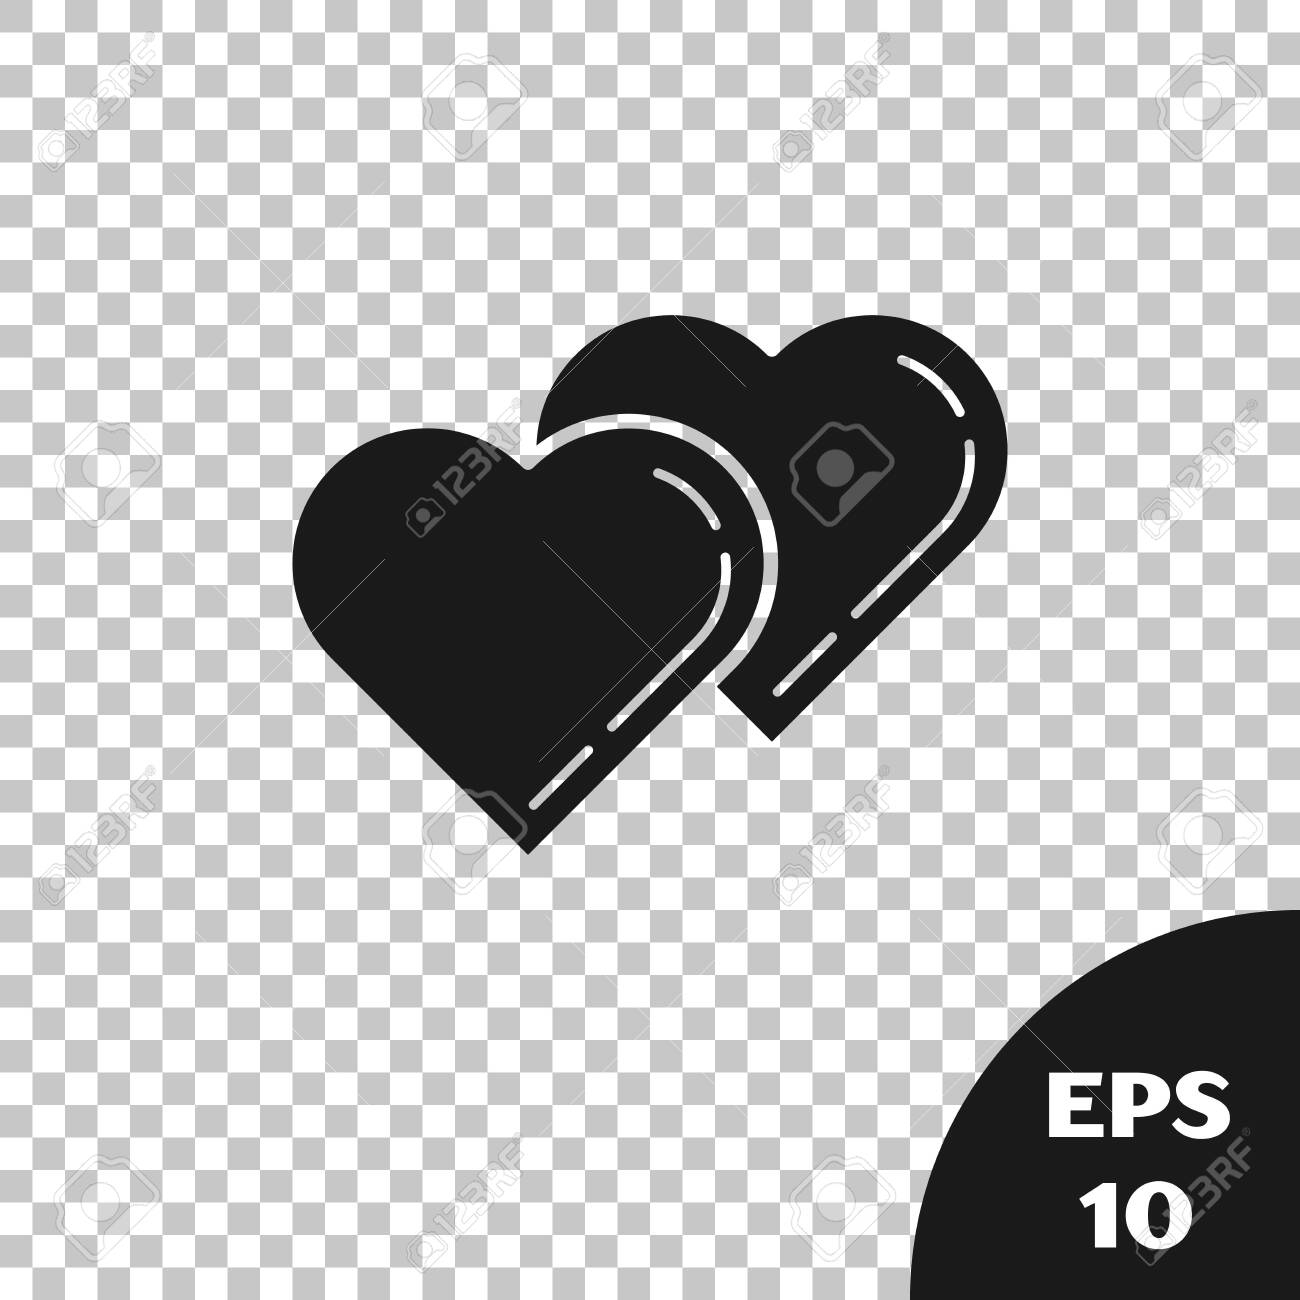 Black Two Linked Hearts icon isolated on transparent background